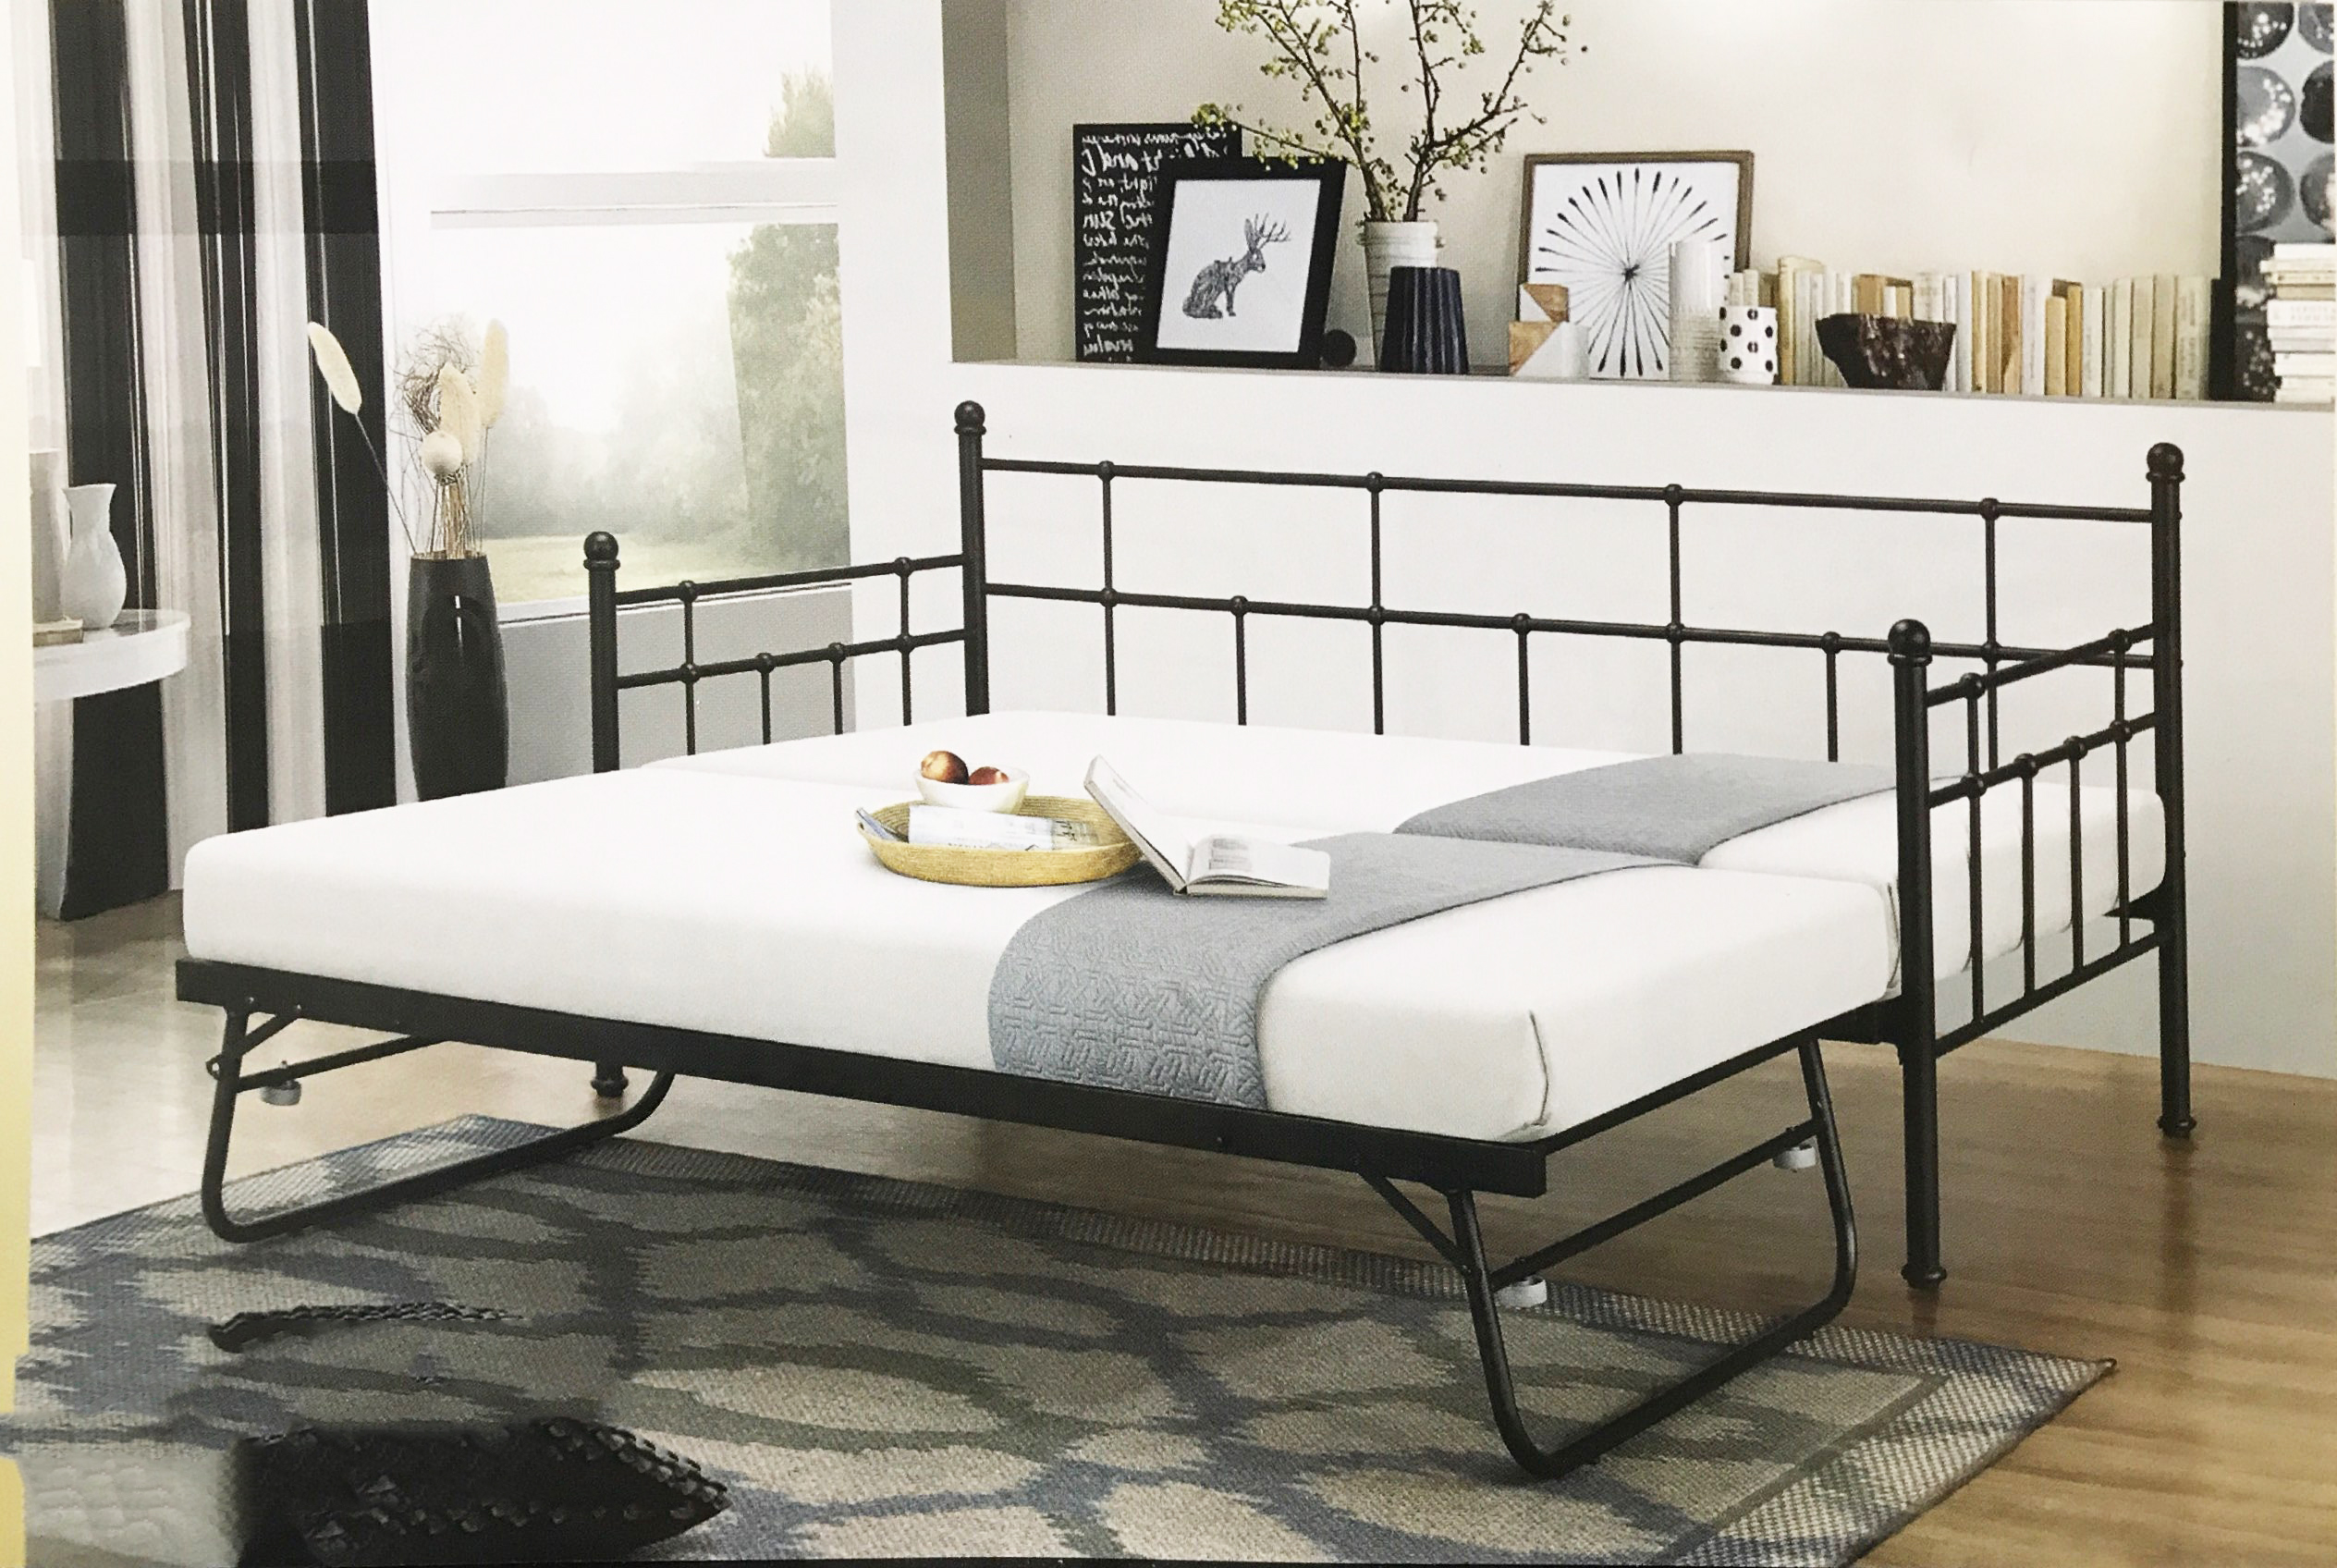 - BAGO Daybed With Trundle Could Convert Into Queen Bed